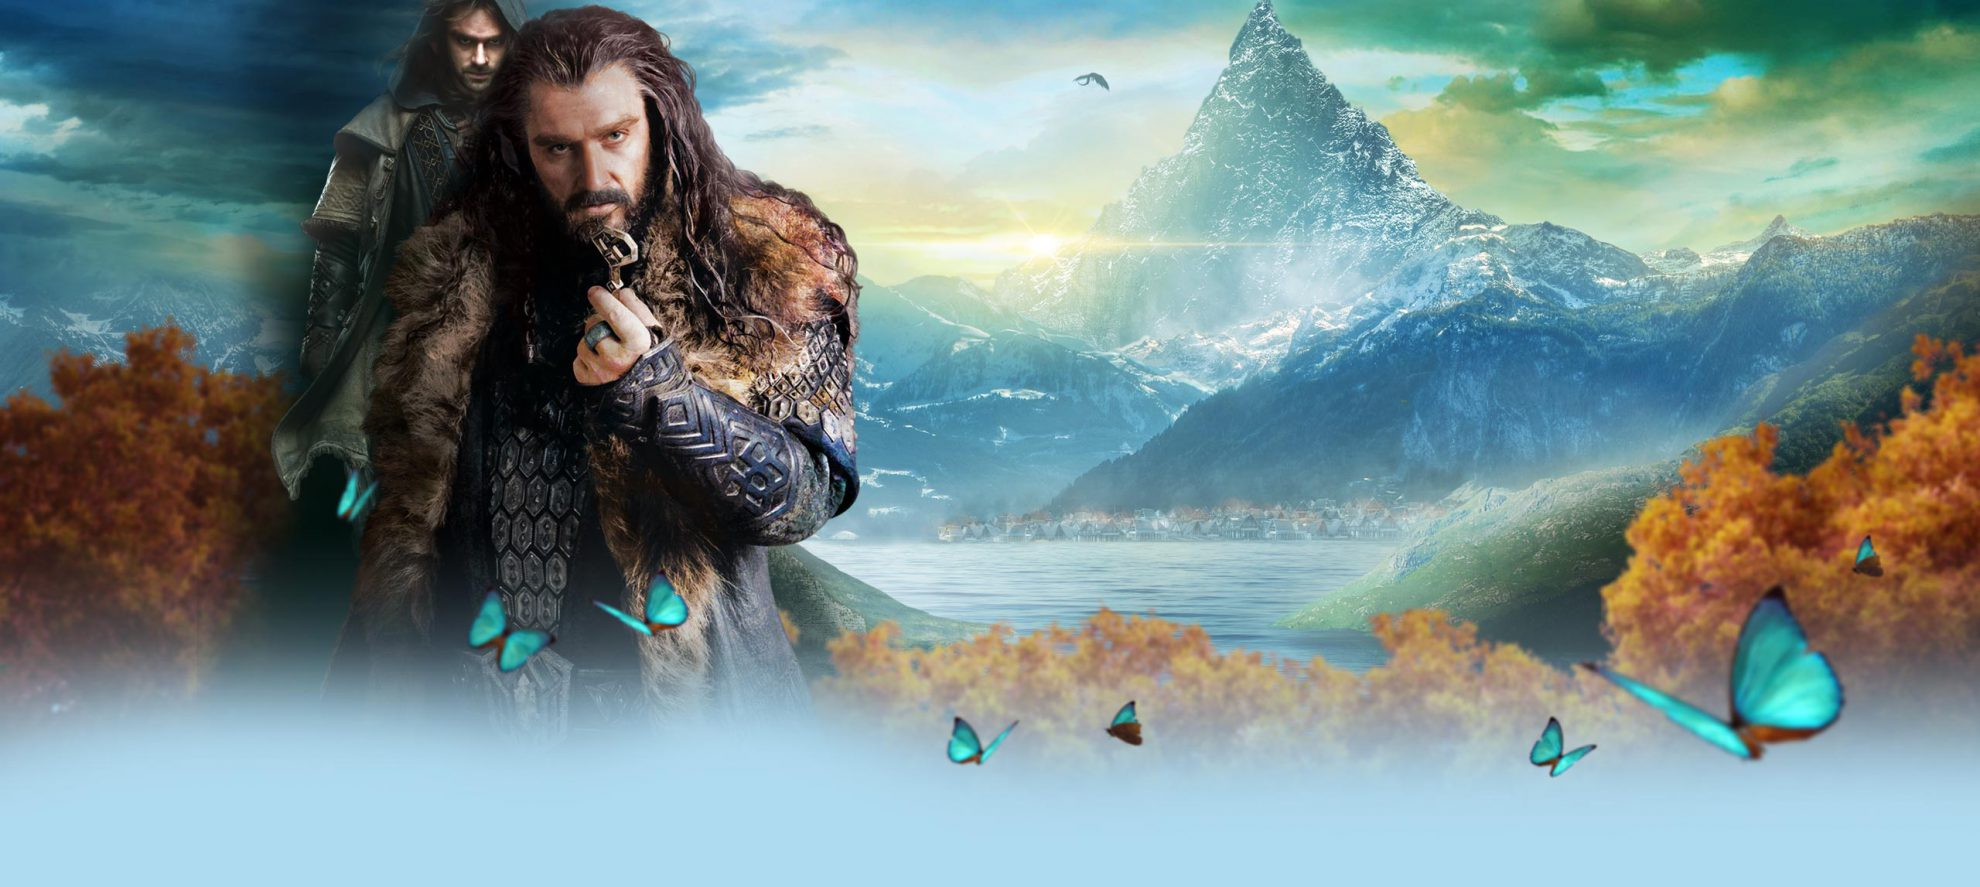 hobbitcon_3-background-large_v4